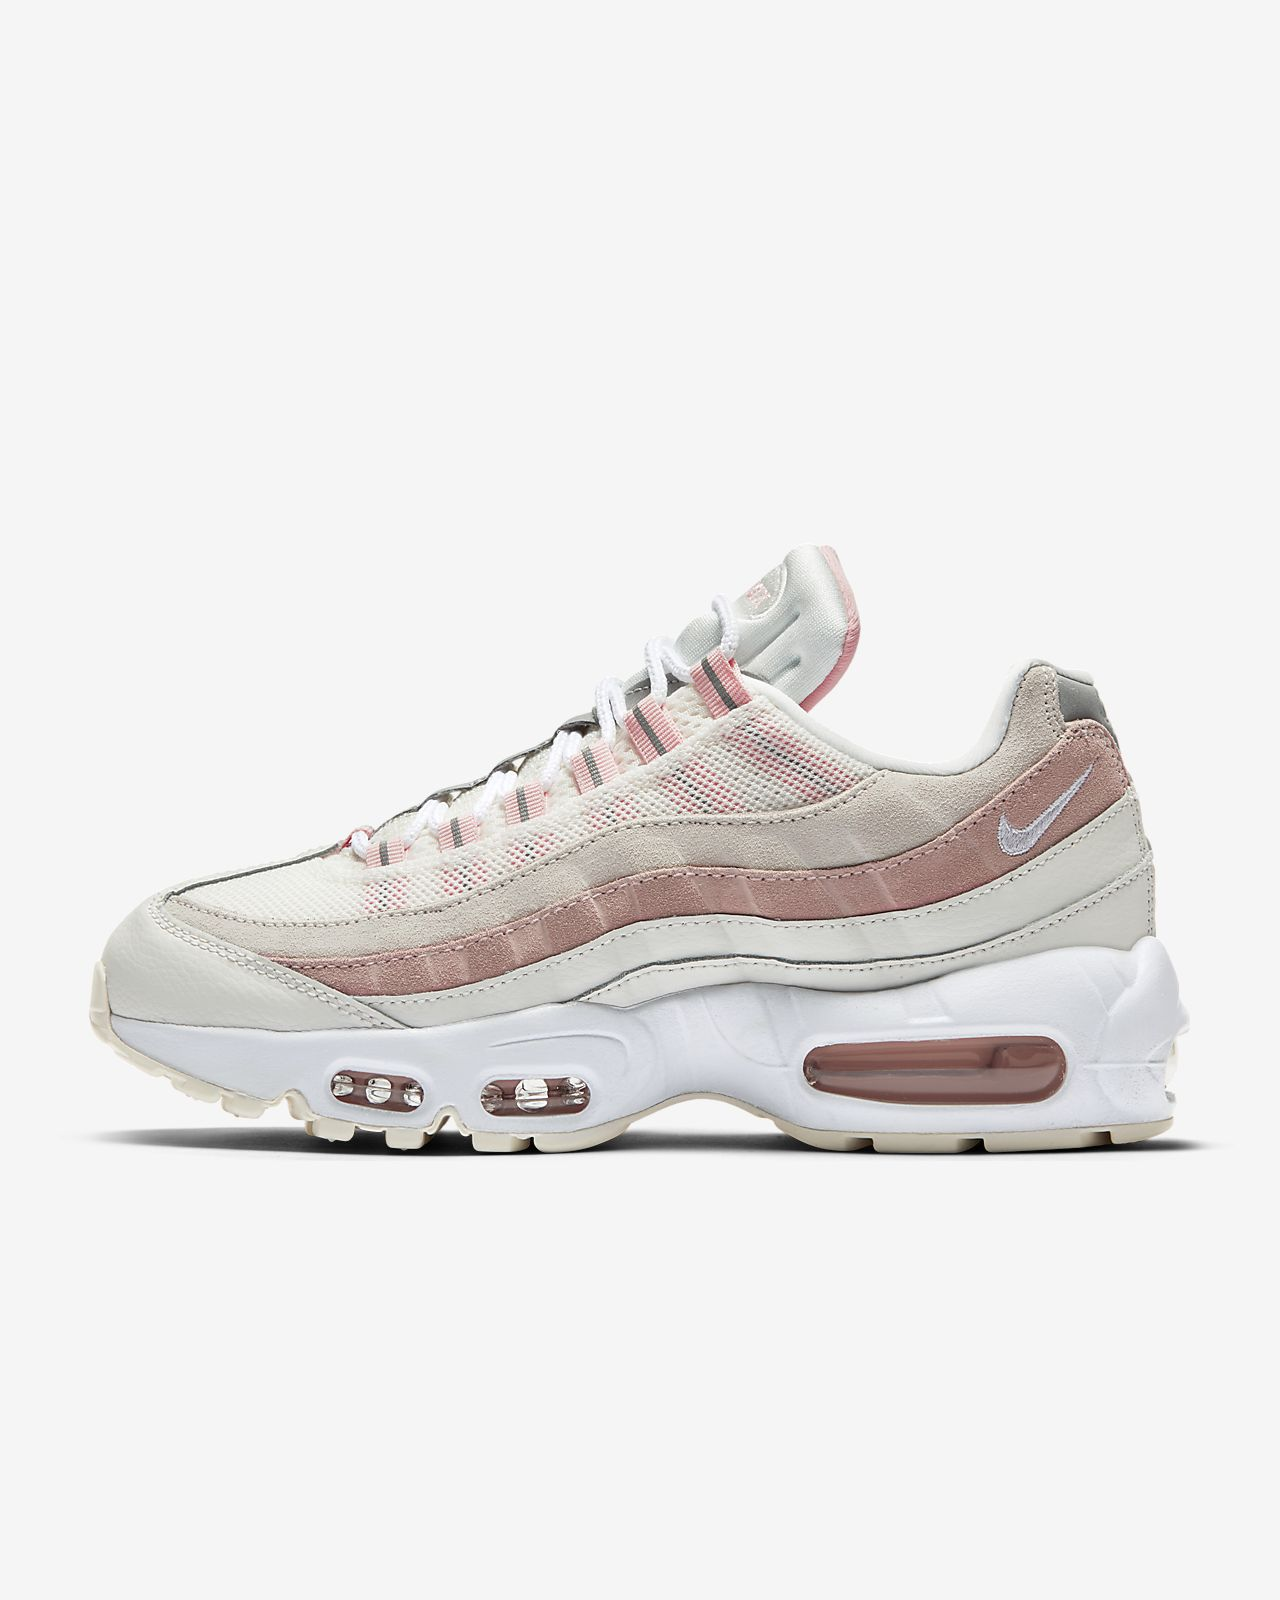 Nike Air Max 95 India Cheap Nike Shoes Online Store